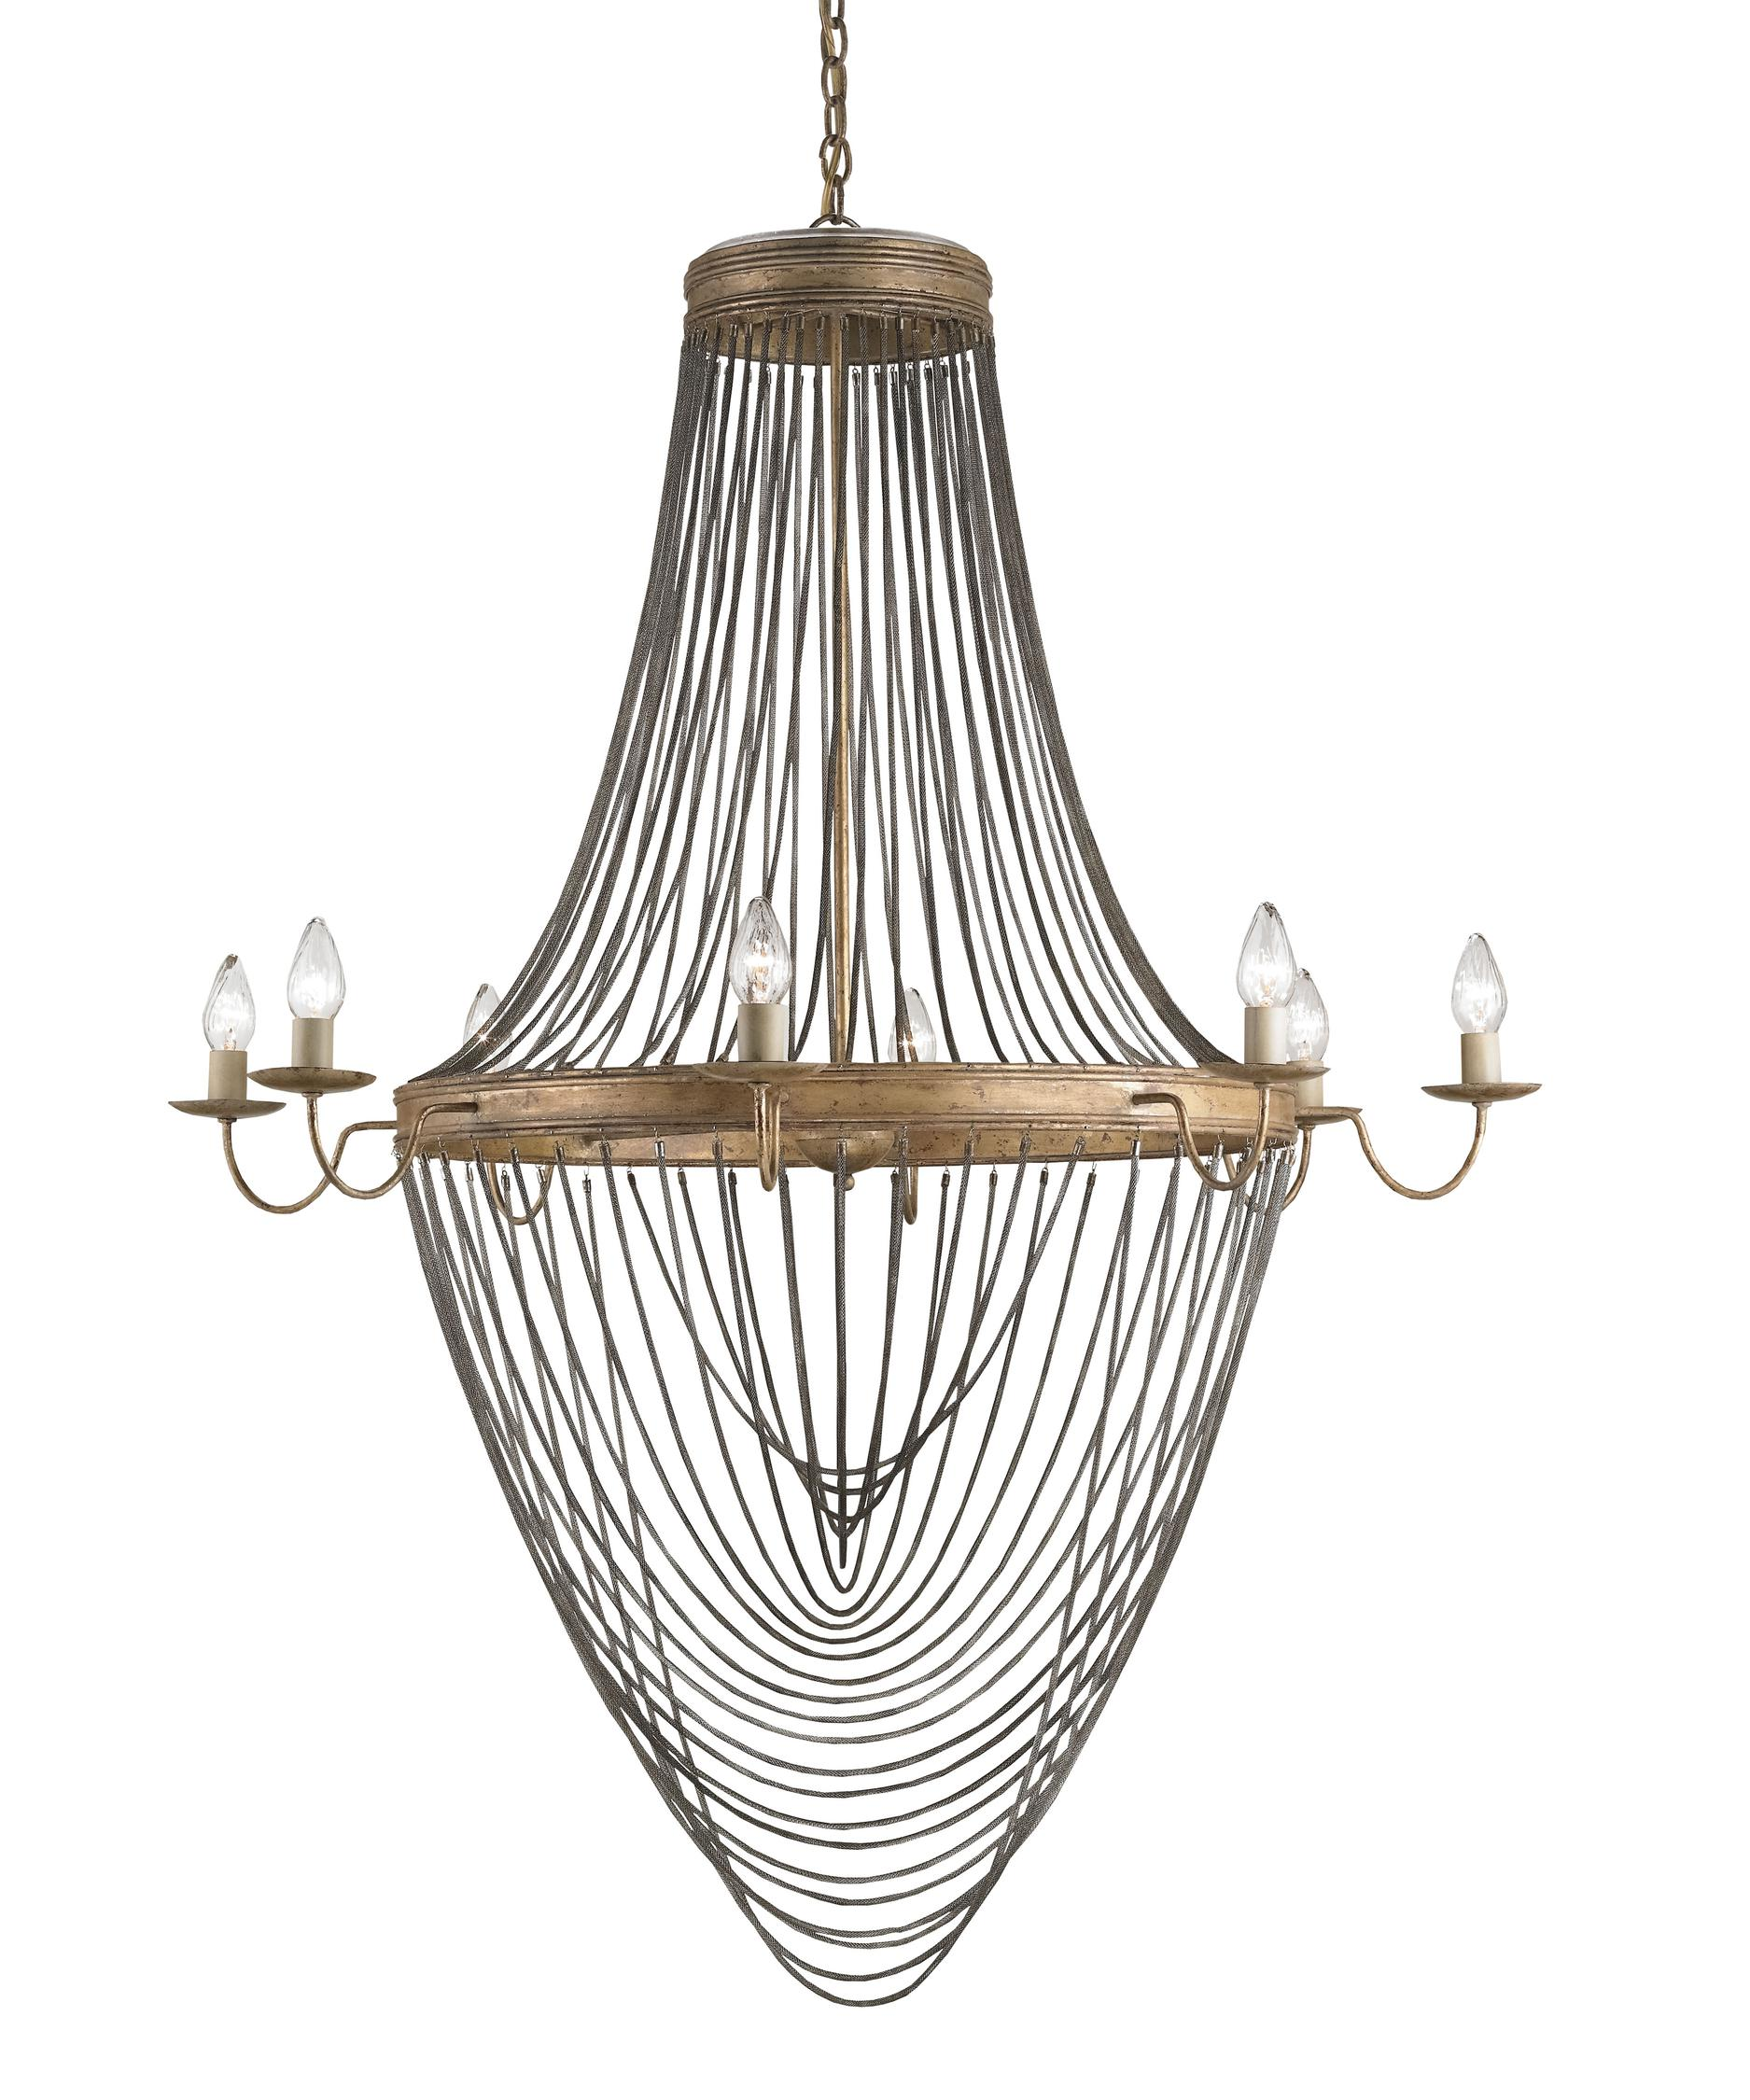 Currey and Company Lucien 46 Inch Wide 8 Light Chandelier – Currey and Company Lighting Chandeliers